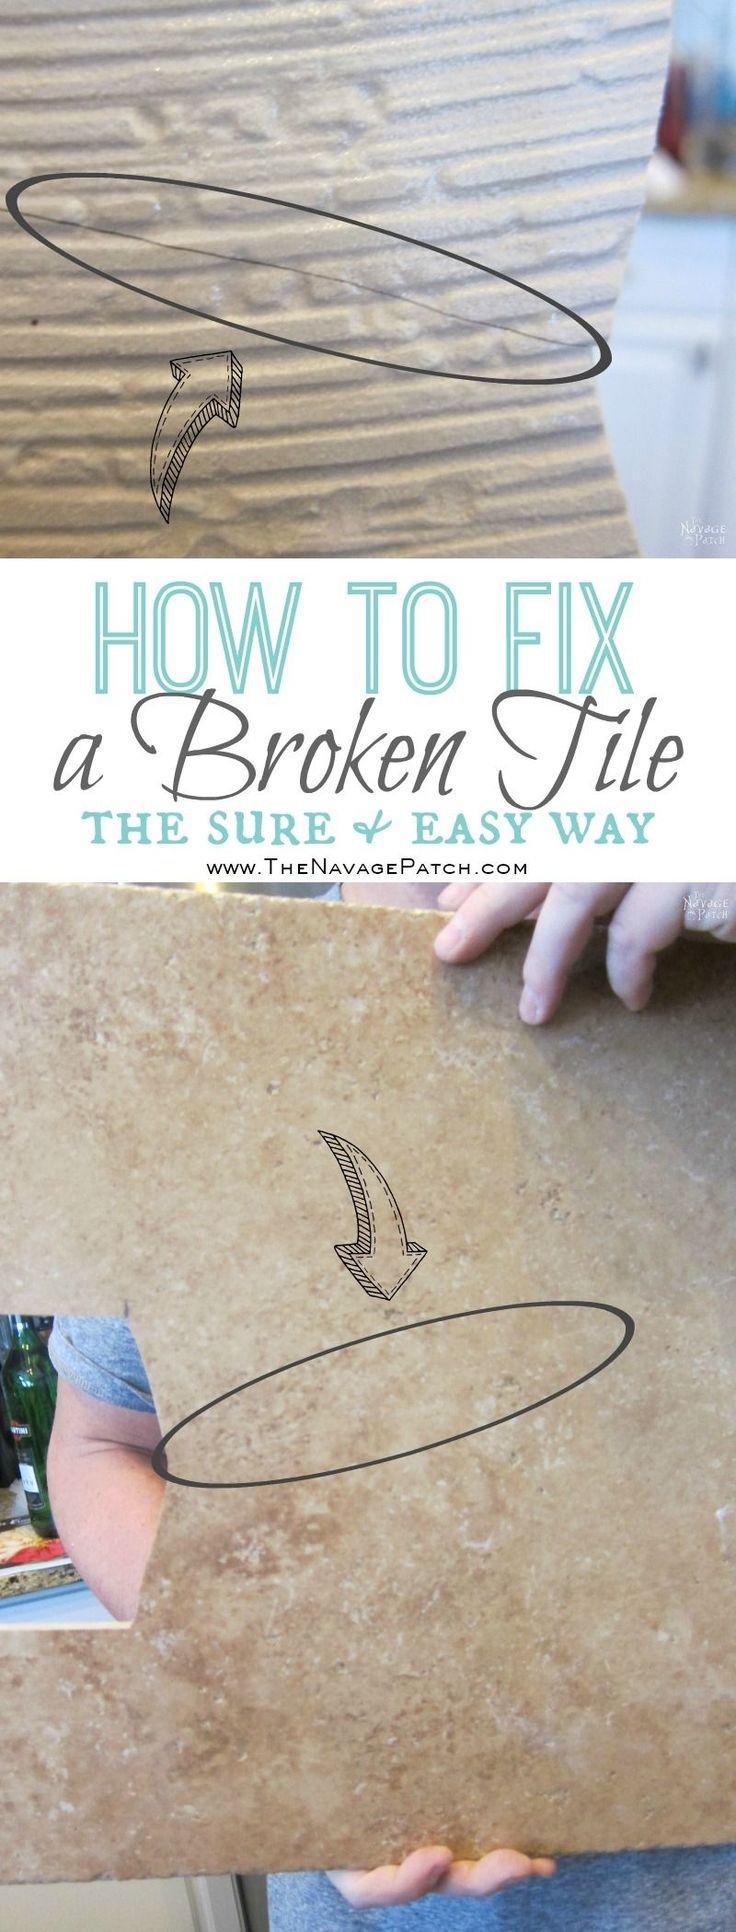 The 25 best how to repair tiles ideas on pinterest easy tile guest bathroom renovation how to tile a floor like a pro diy floor tiling how to cut tiles how to repair broken ceramic tiles how to lay dailygadgetfo Images